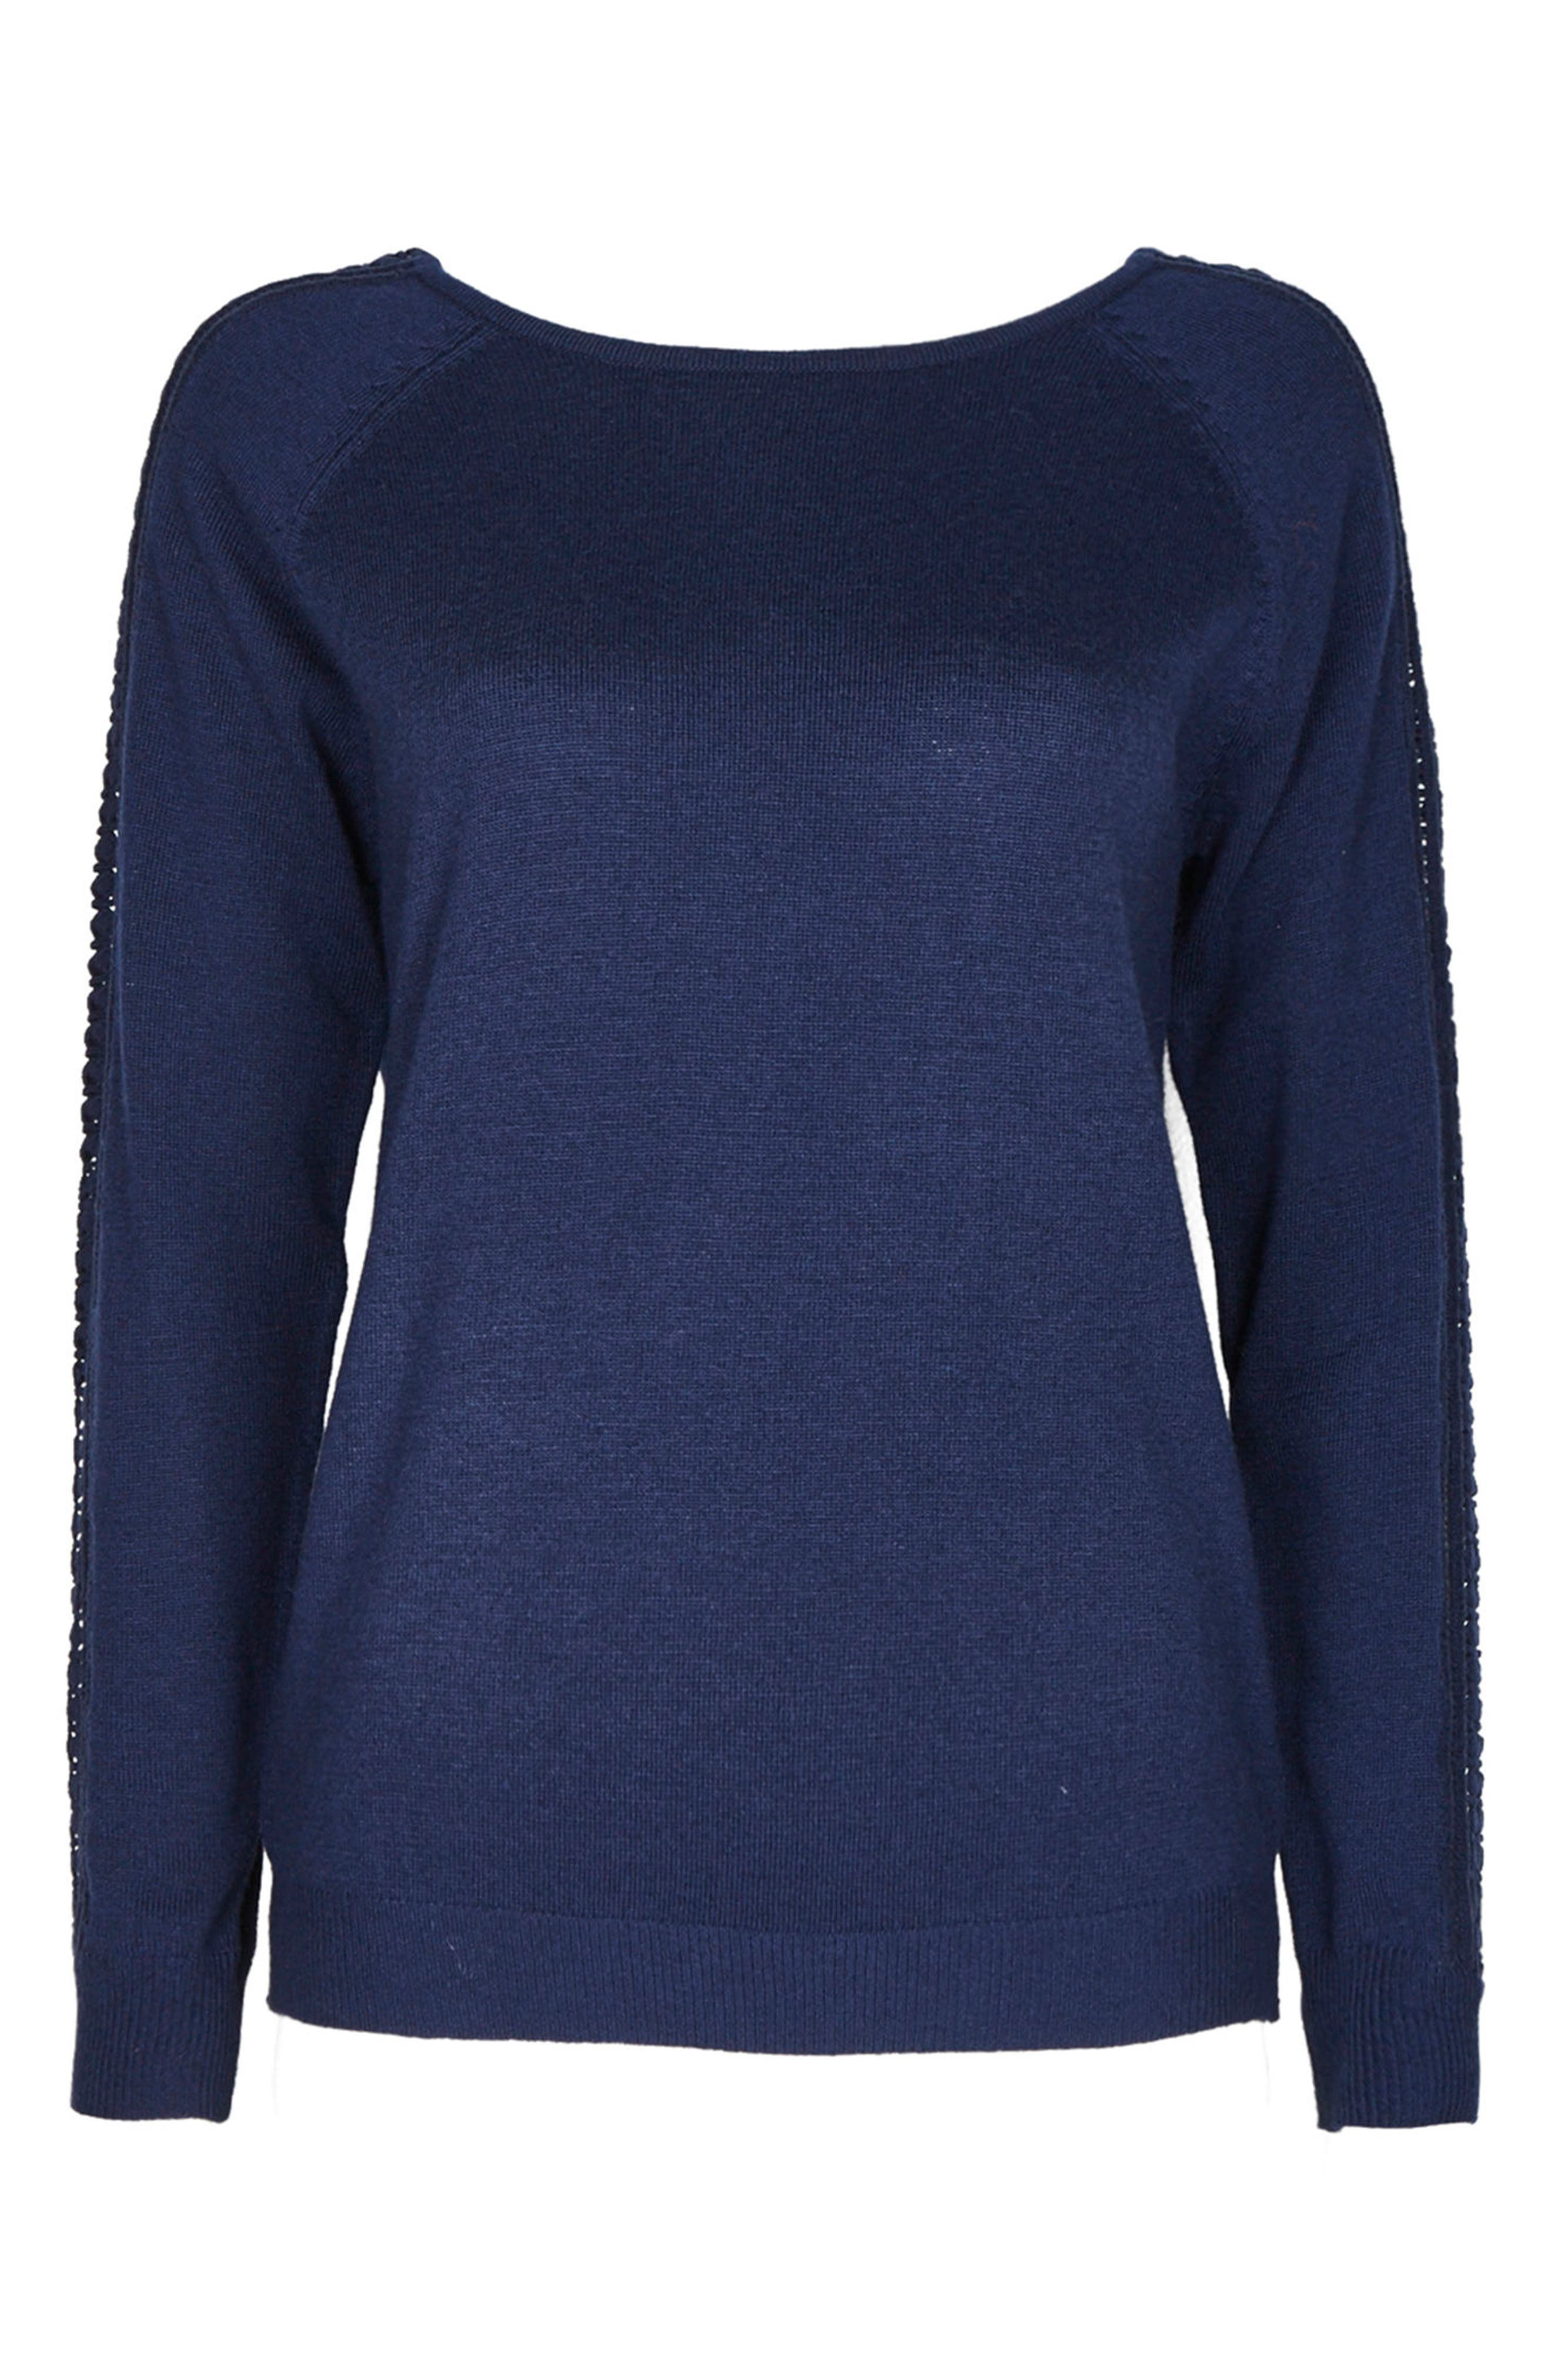 Lace Trim Sweater,                         Main,                         color, Navy